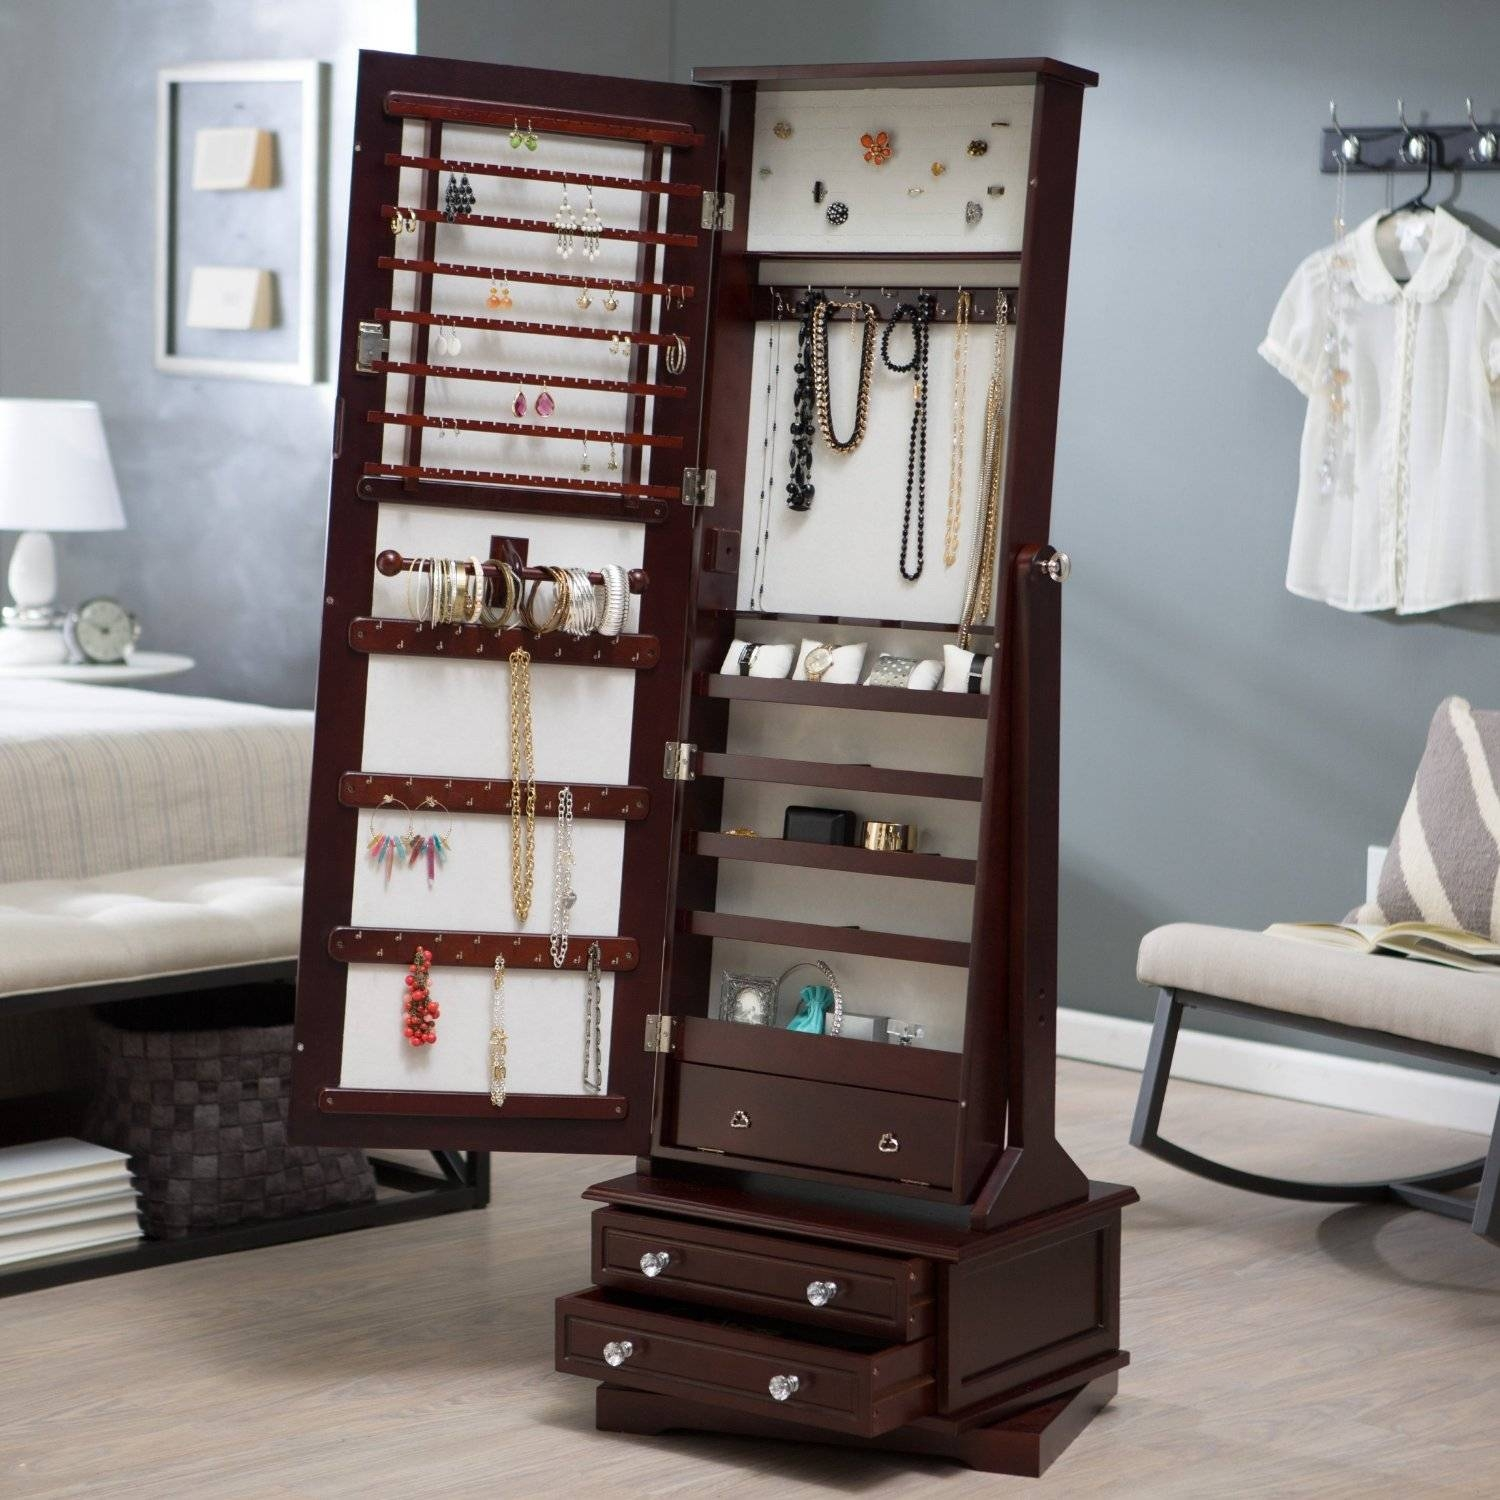 Floor Standing Mirror With Jewelry Storage | Storage Decoration within Full Length Free Standing Mirrors With Drawer (Image 10 of 25)